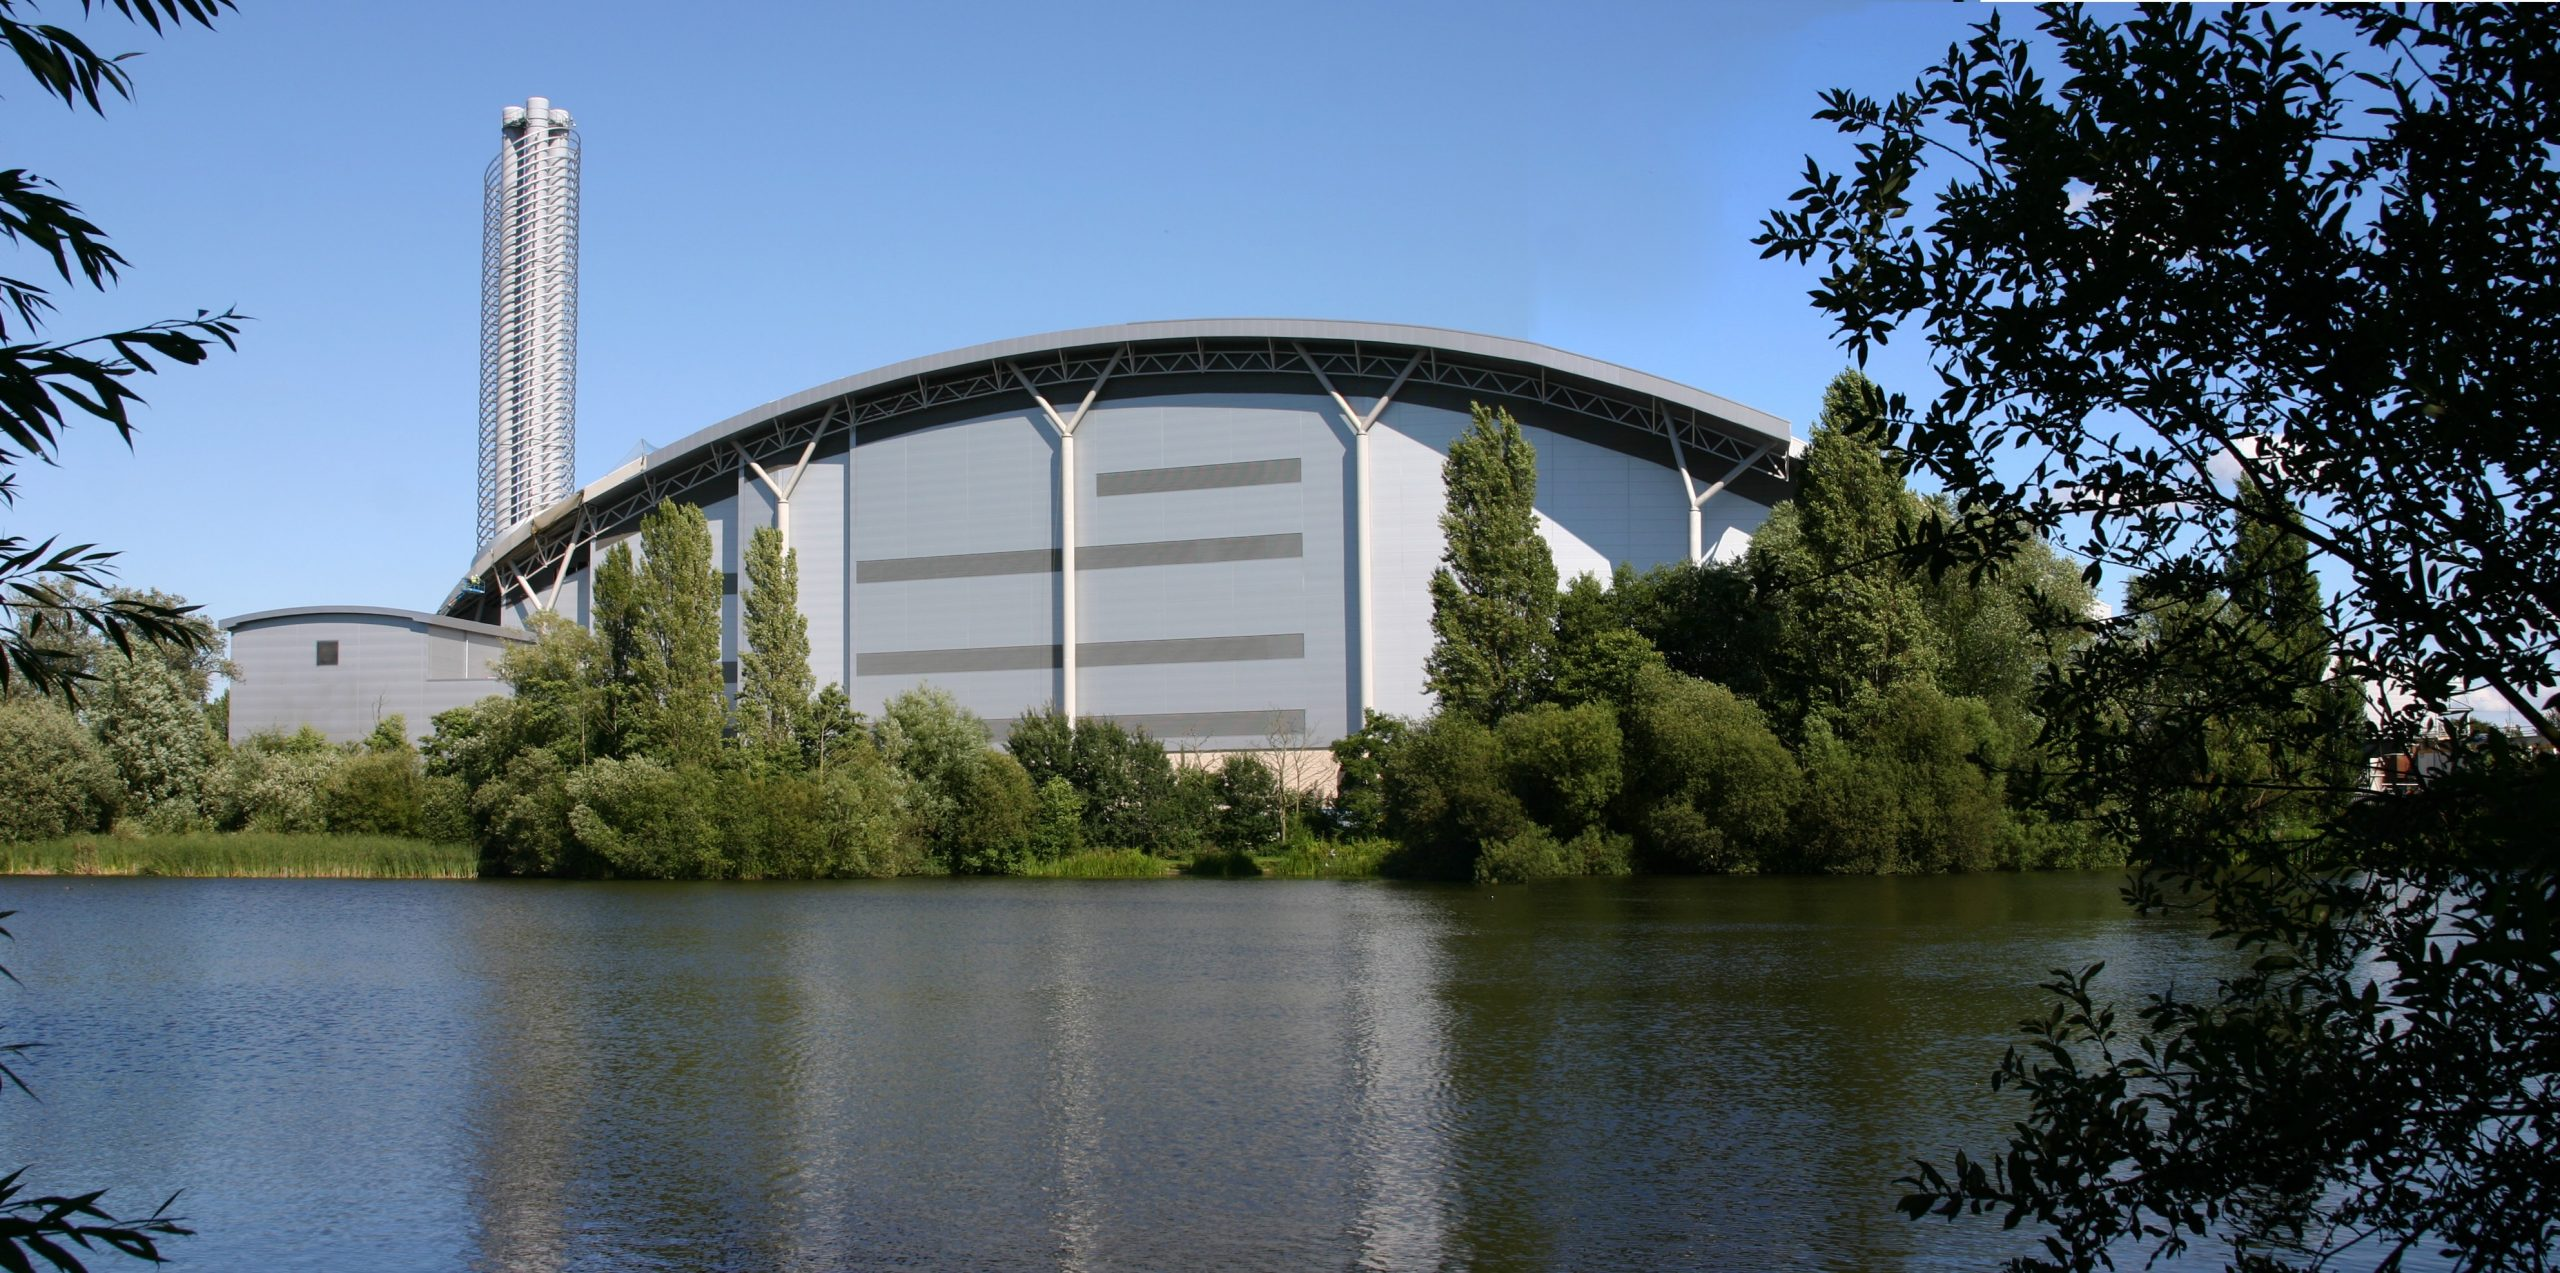 Despite its tranquil appearance, the modern, award winning Lakeside Energy from Waste complex is just off the M25 and M4, close to Heathrow Terminal 5